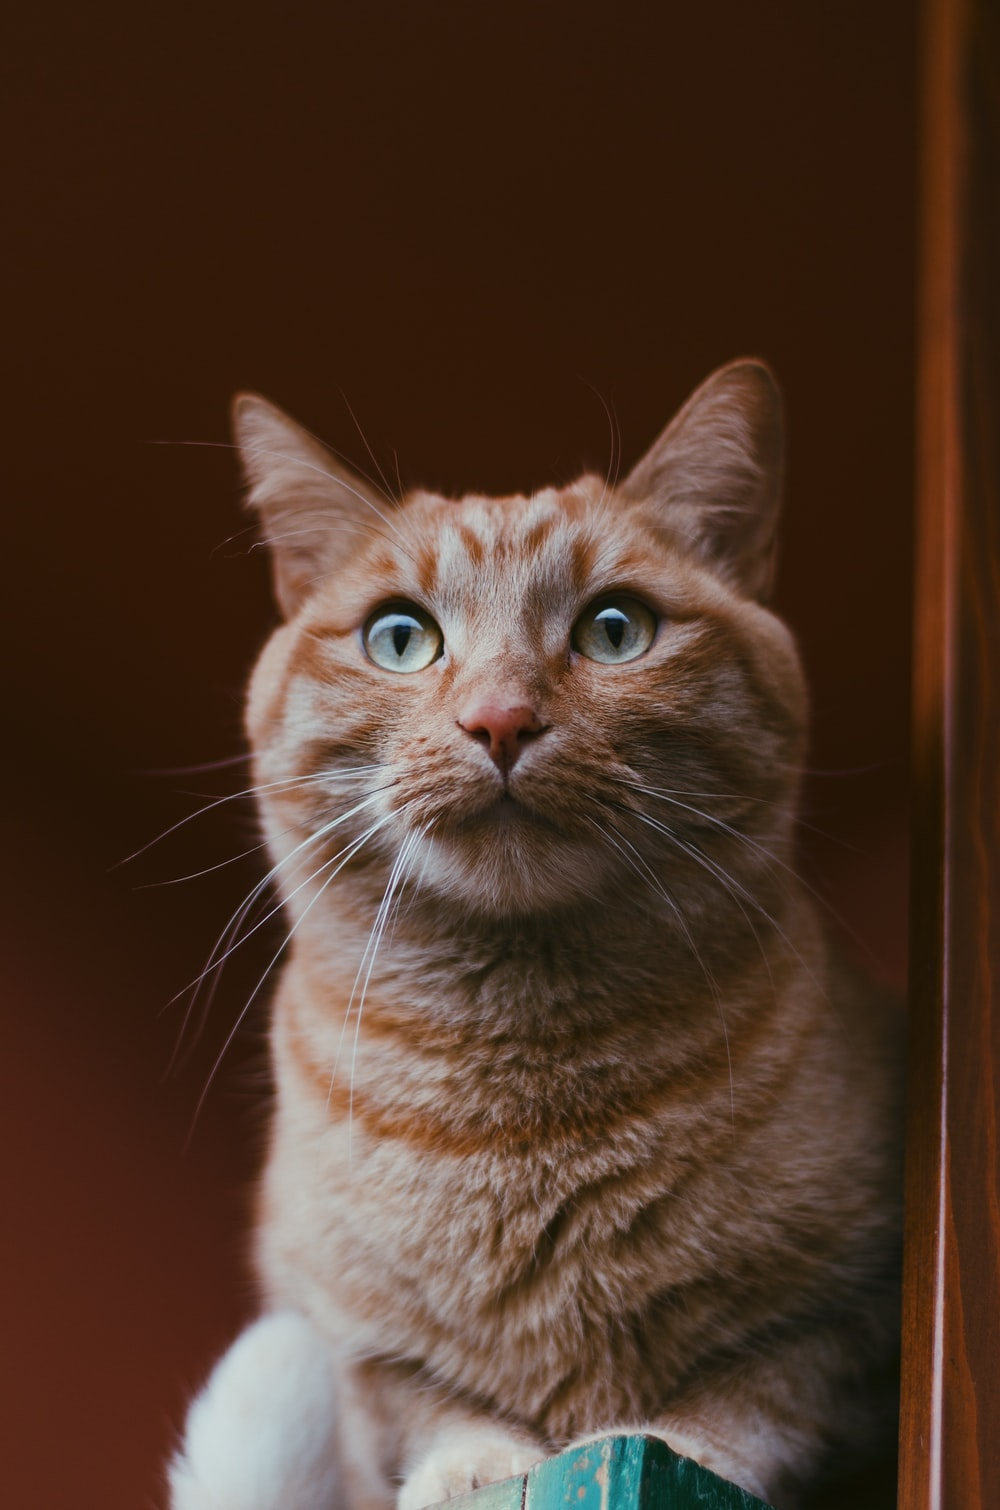 orange tabby cat in close-up photography